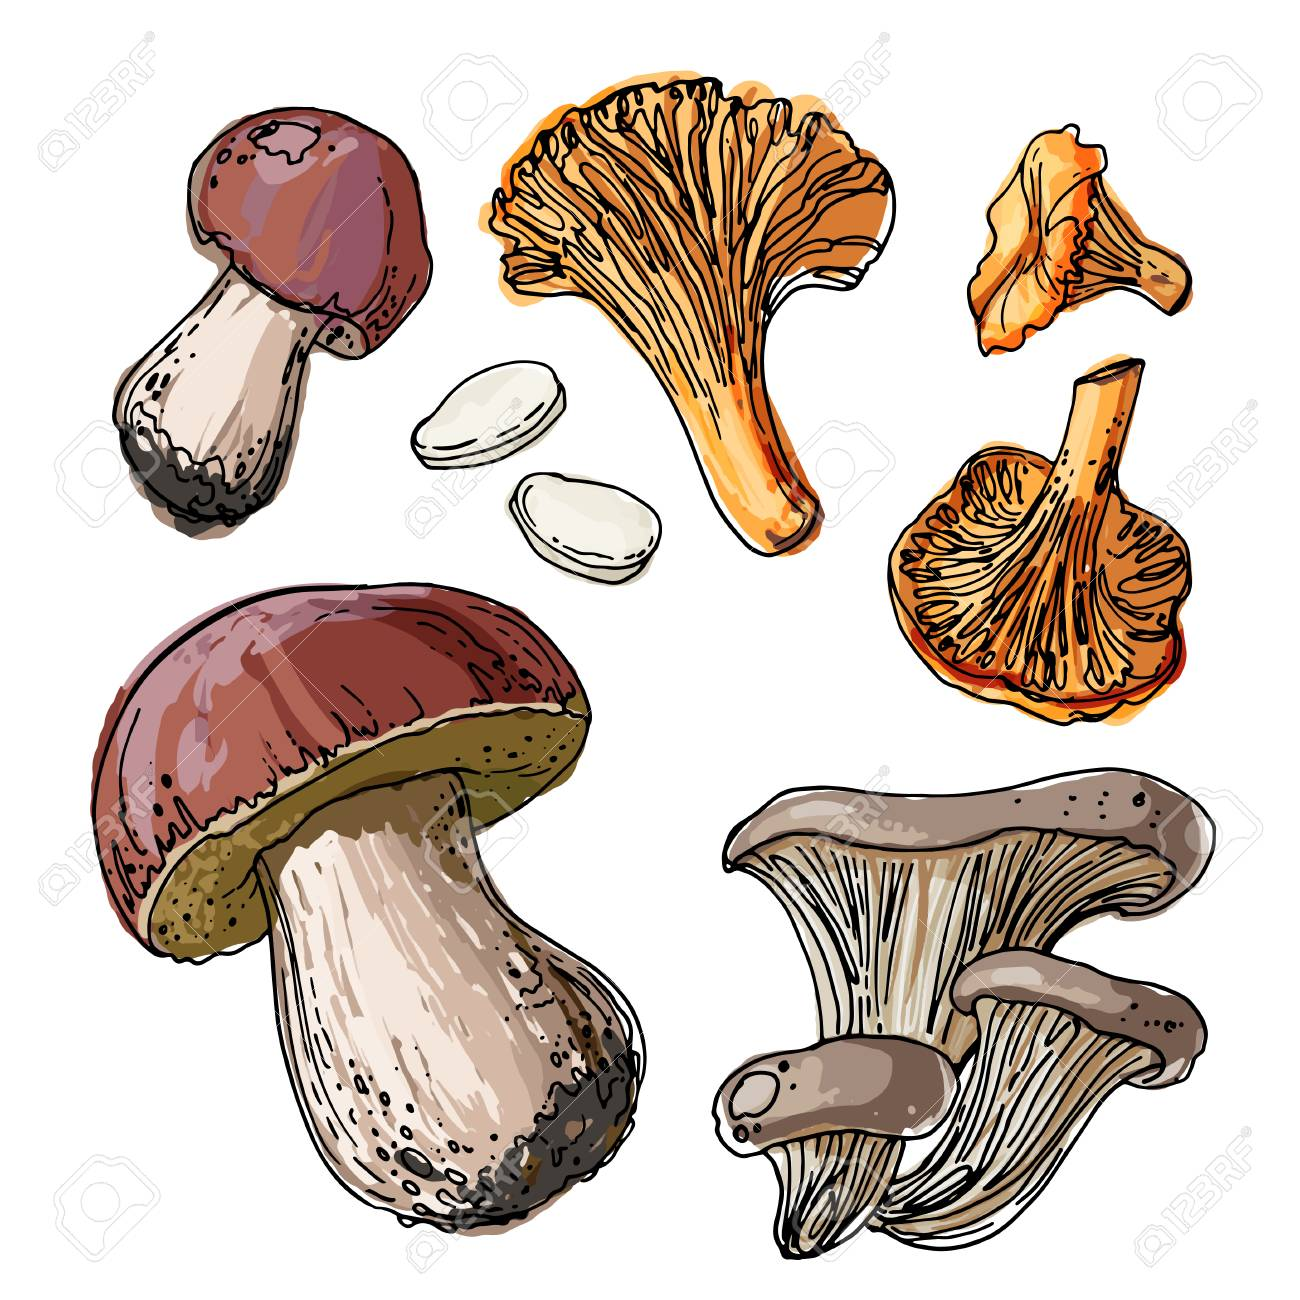 Set Of Edible Mushrooms A Sketch Of Food Drawn By A Black Line